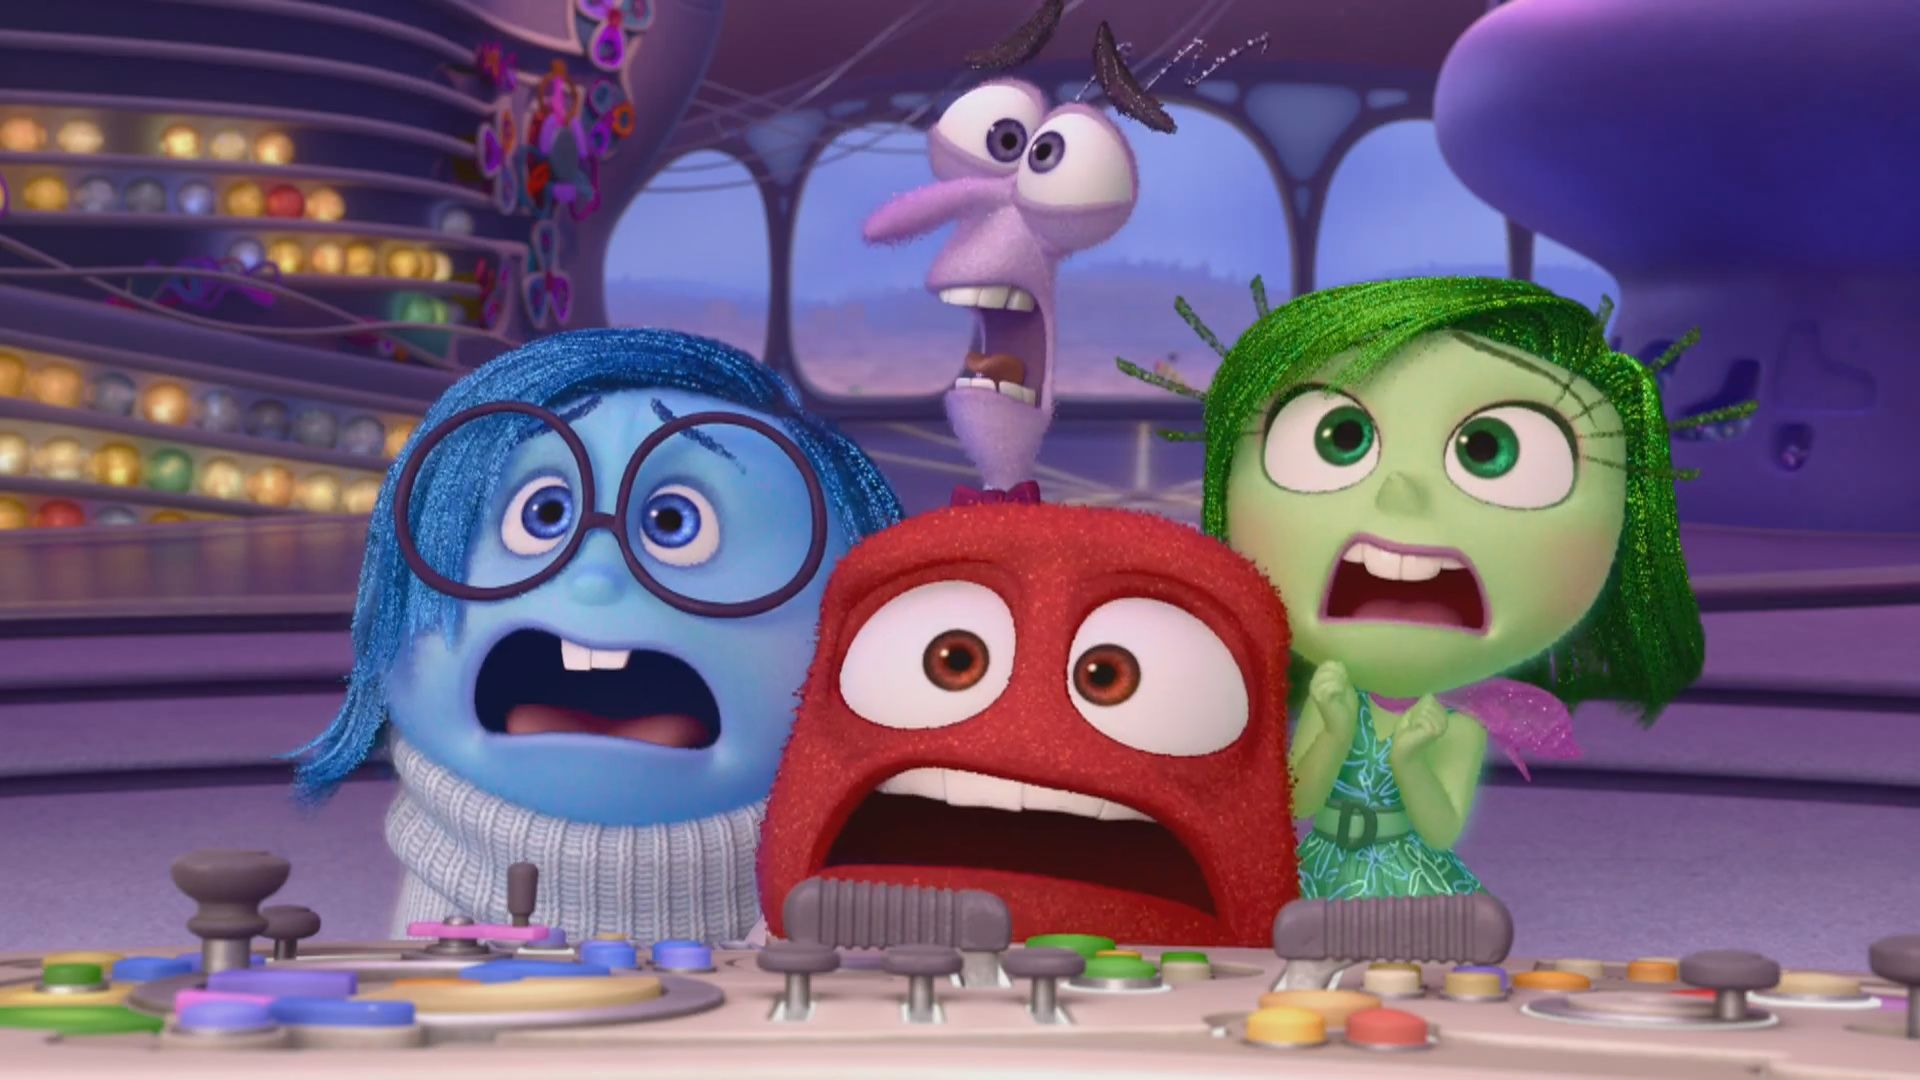 Inside Out Walt disney movies, Kids' movies, Inside out